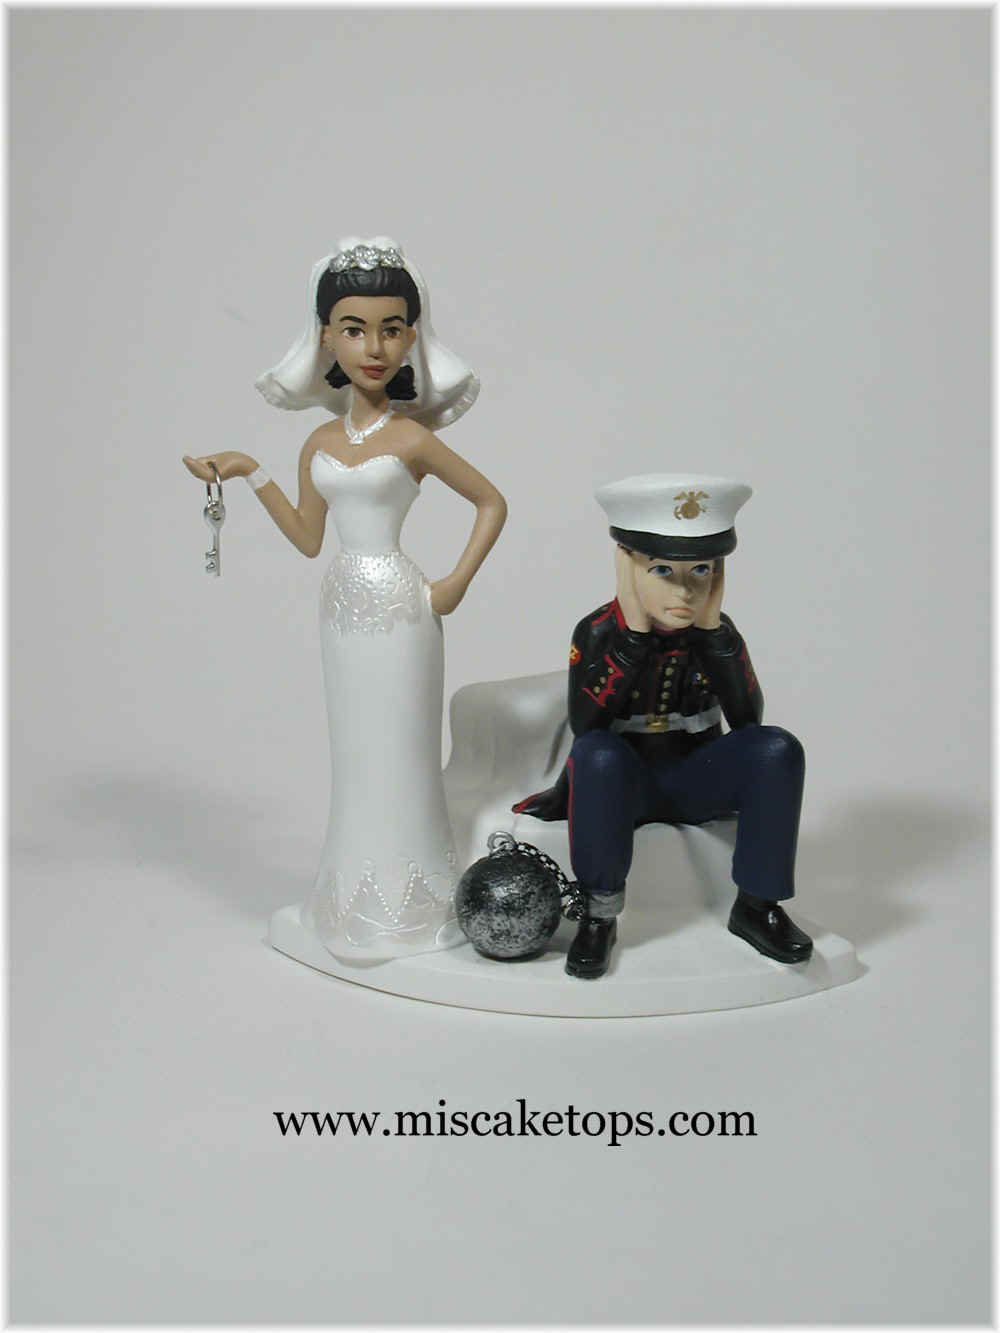 Military Examples Of Personalized Cake Tops